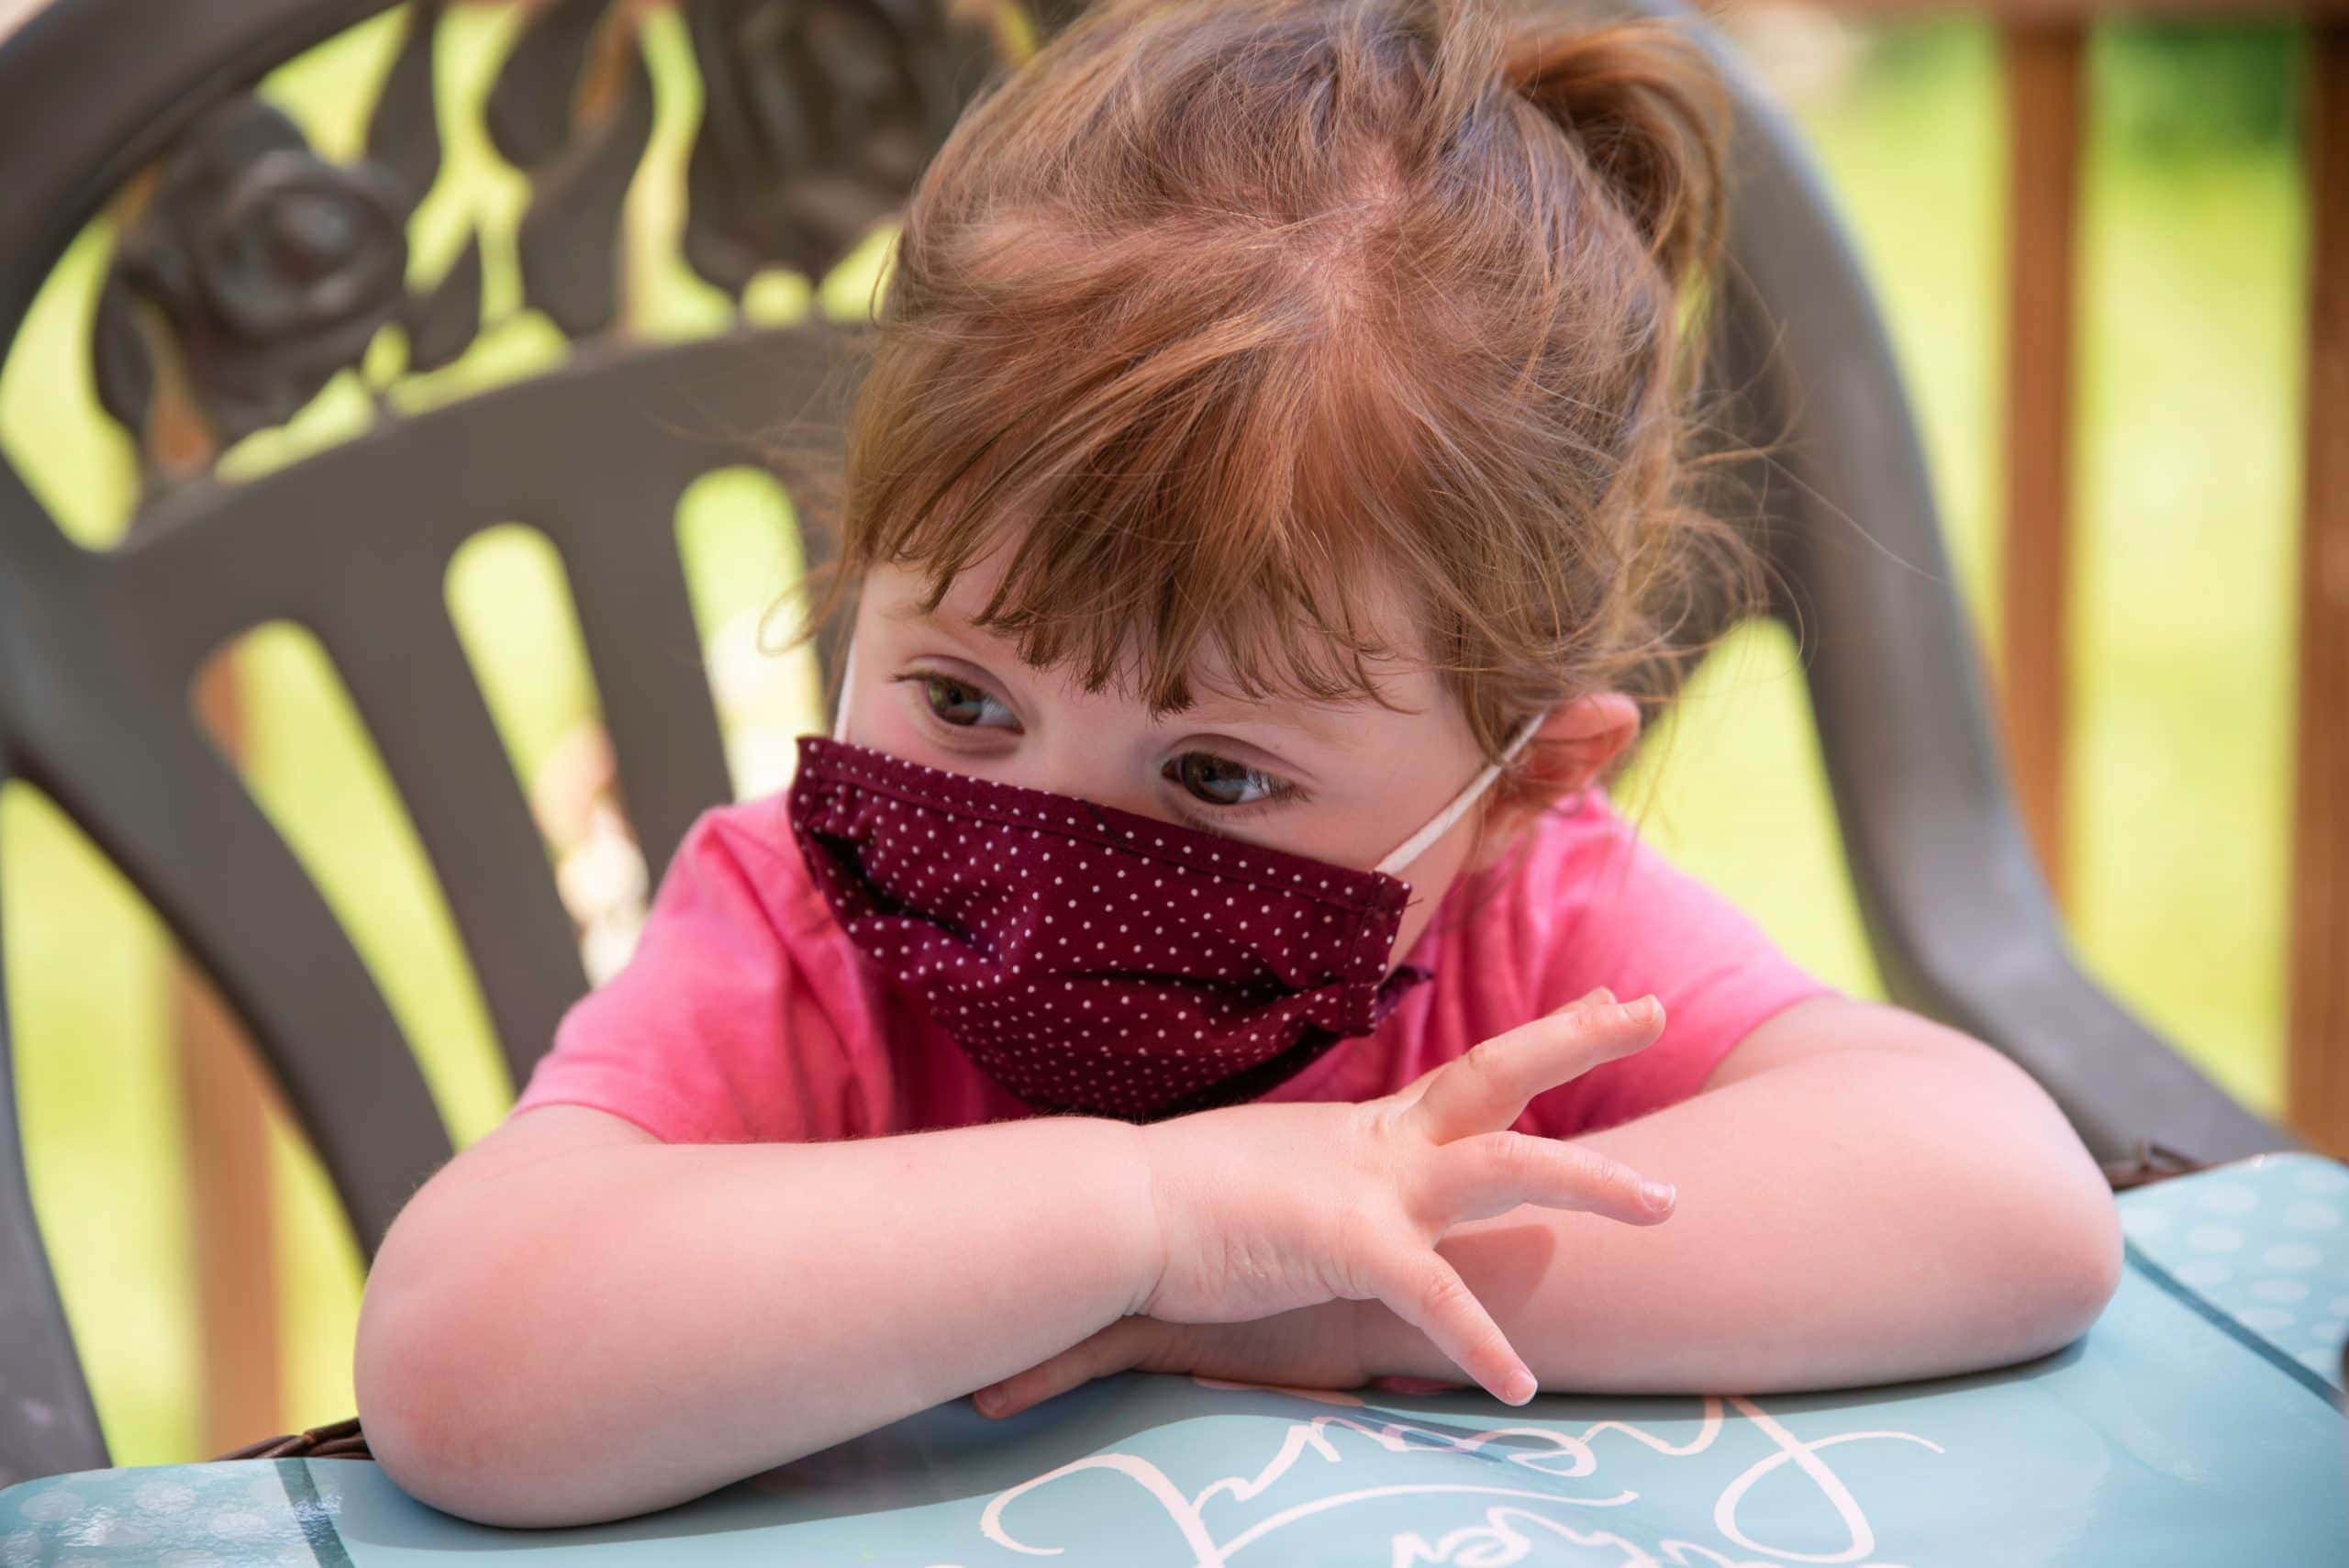 Unmasked – Why Masks in Schools Not Only Are Unnecessary But May Harm Children